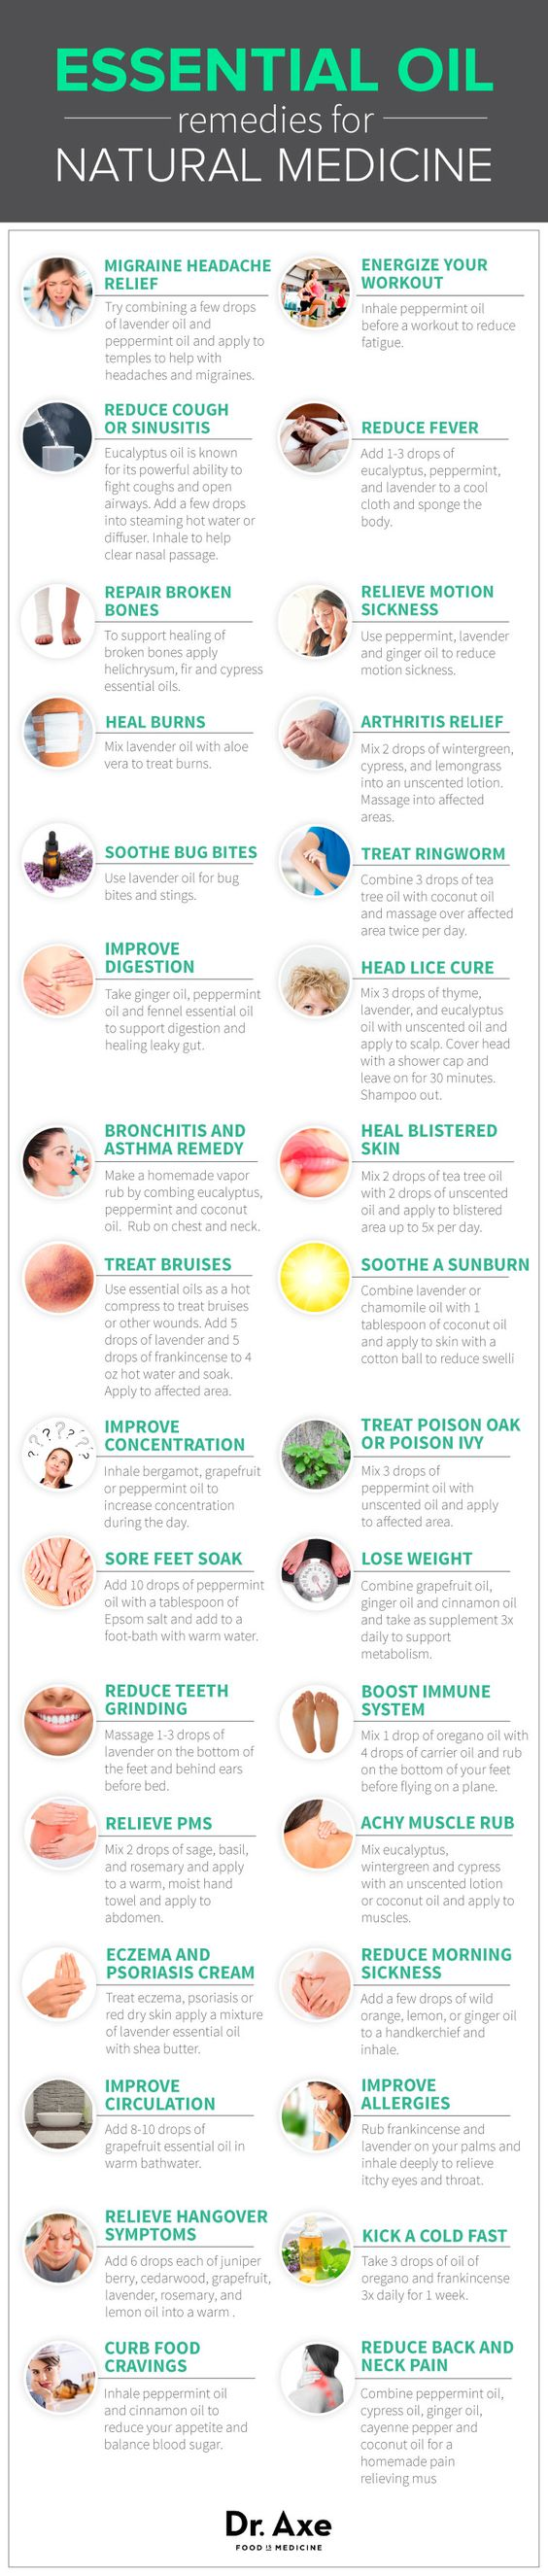 Essential Oil Remedies Infographic: